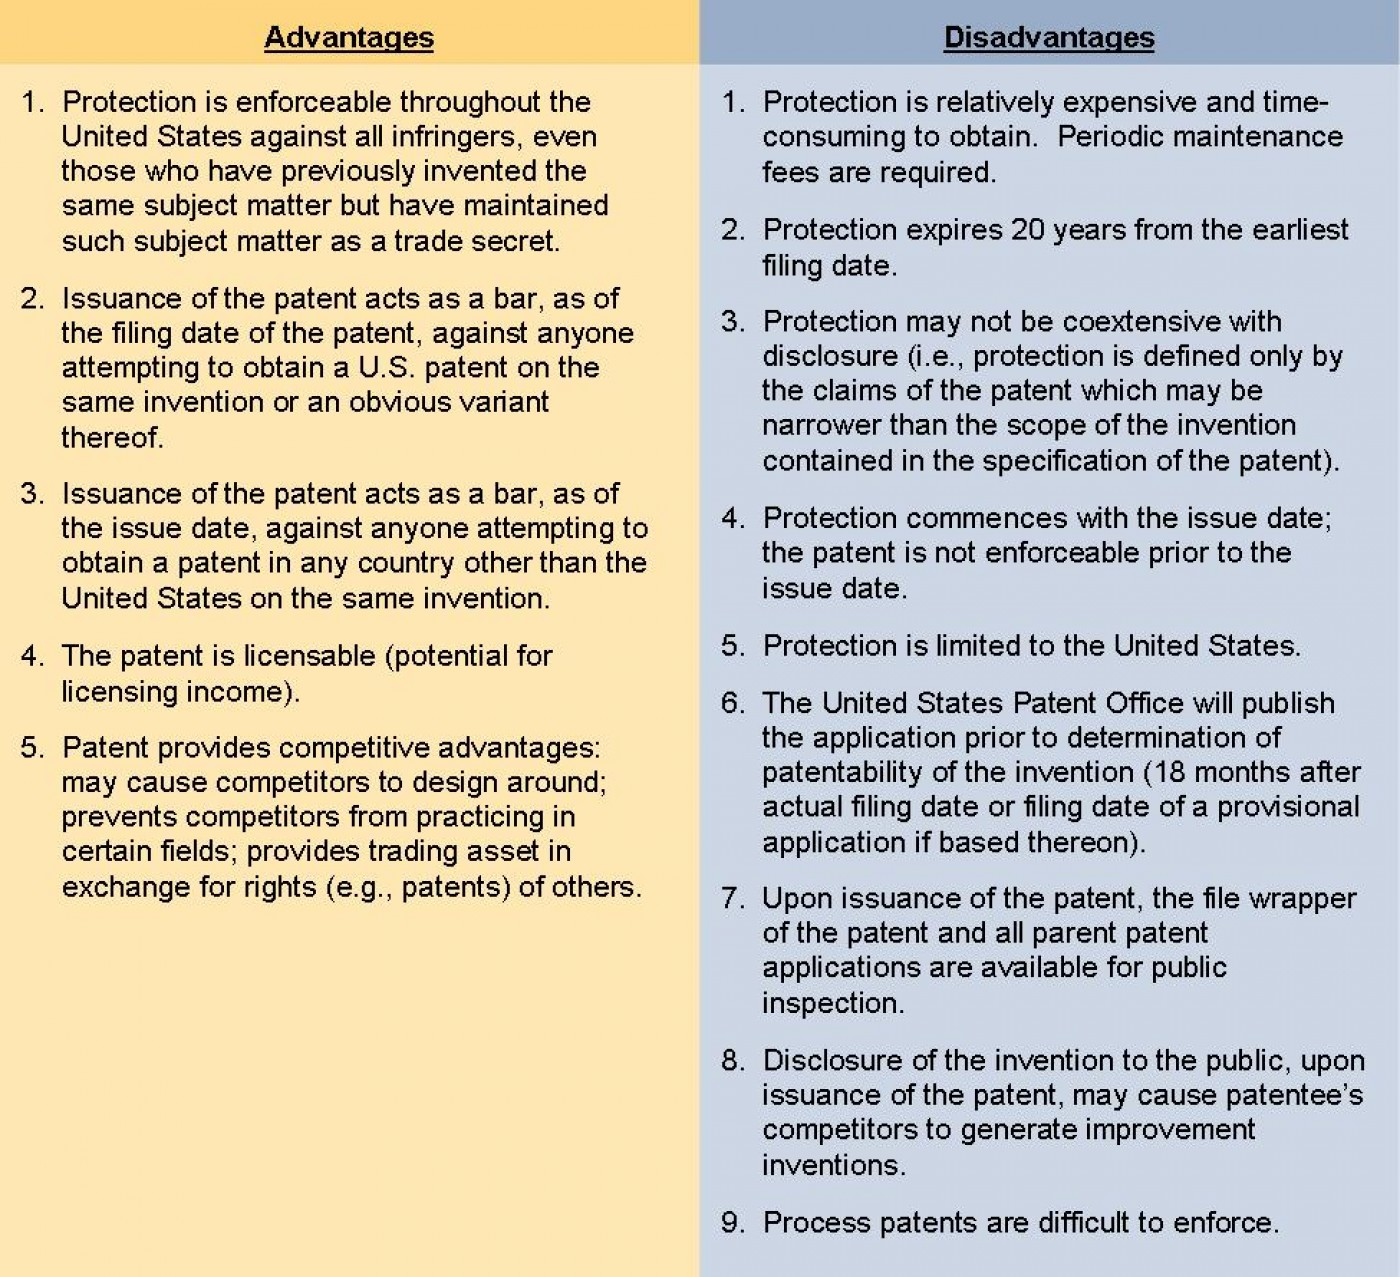 027 News87pic2 Advantage And Disadvantage Of Science Essay Shocking Advantages Disadvantages With Quotes In Kannada Tamil Pdf 1400